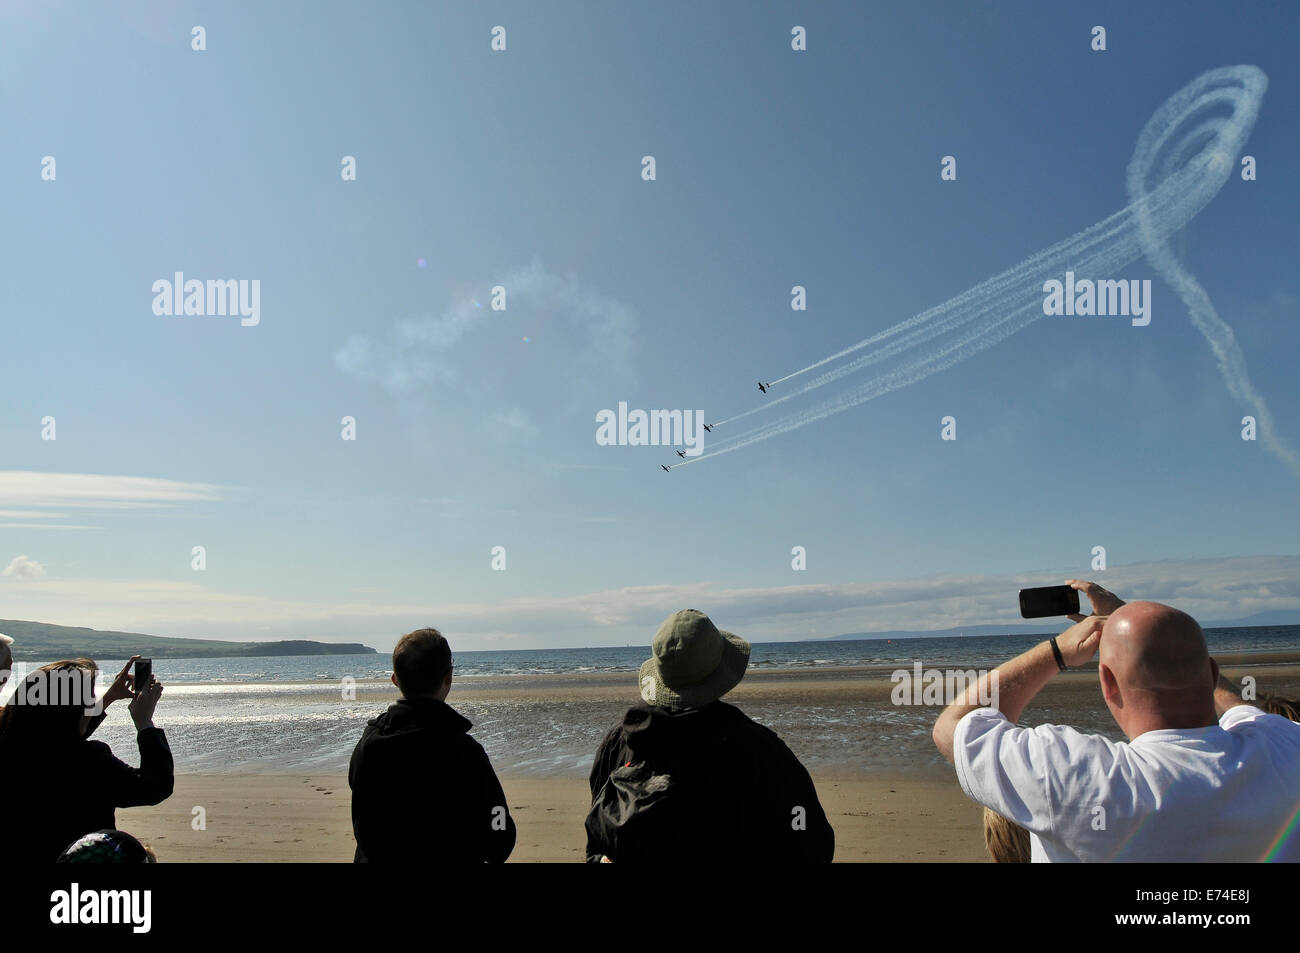 Ayr, Scotland, UK. 6th September 2014. Aircraft take part in a display in the skies above Ayr for the first time Stock Photo